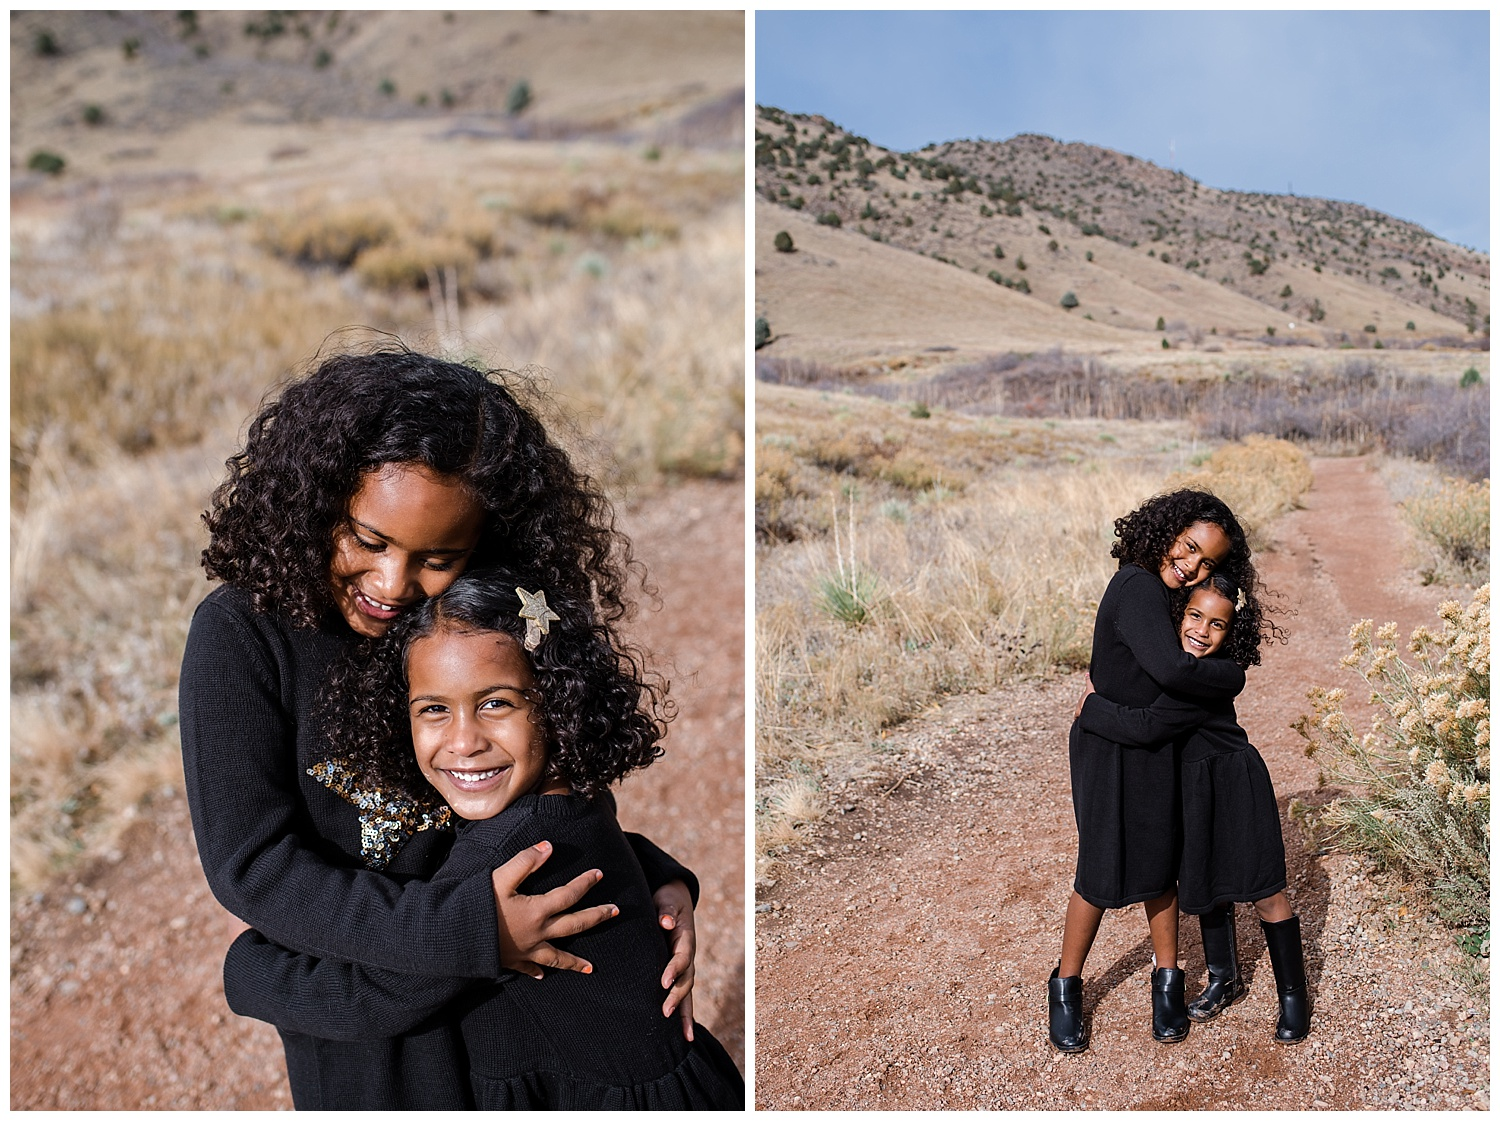 Family session at Red Rocks, Denver Mini Session, Denver Family Photographer, Colorado Family Photographer, Colorado Lifestyle photographer, Denver lifestyle photographer, red rocks photography, family photos in denver